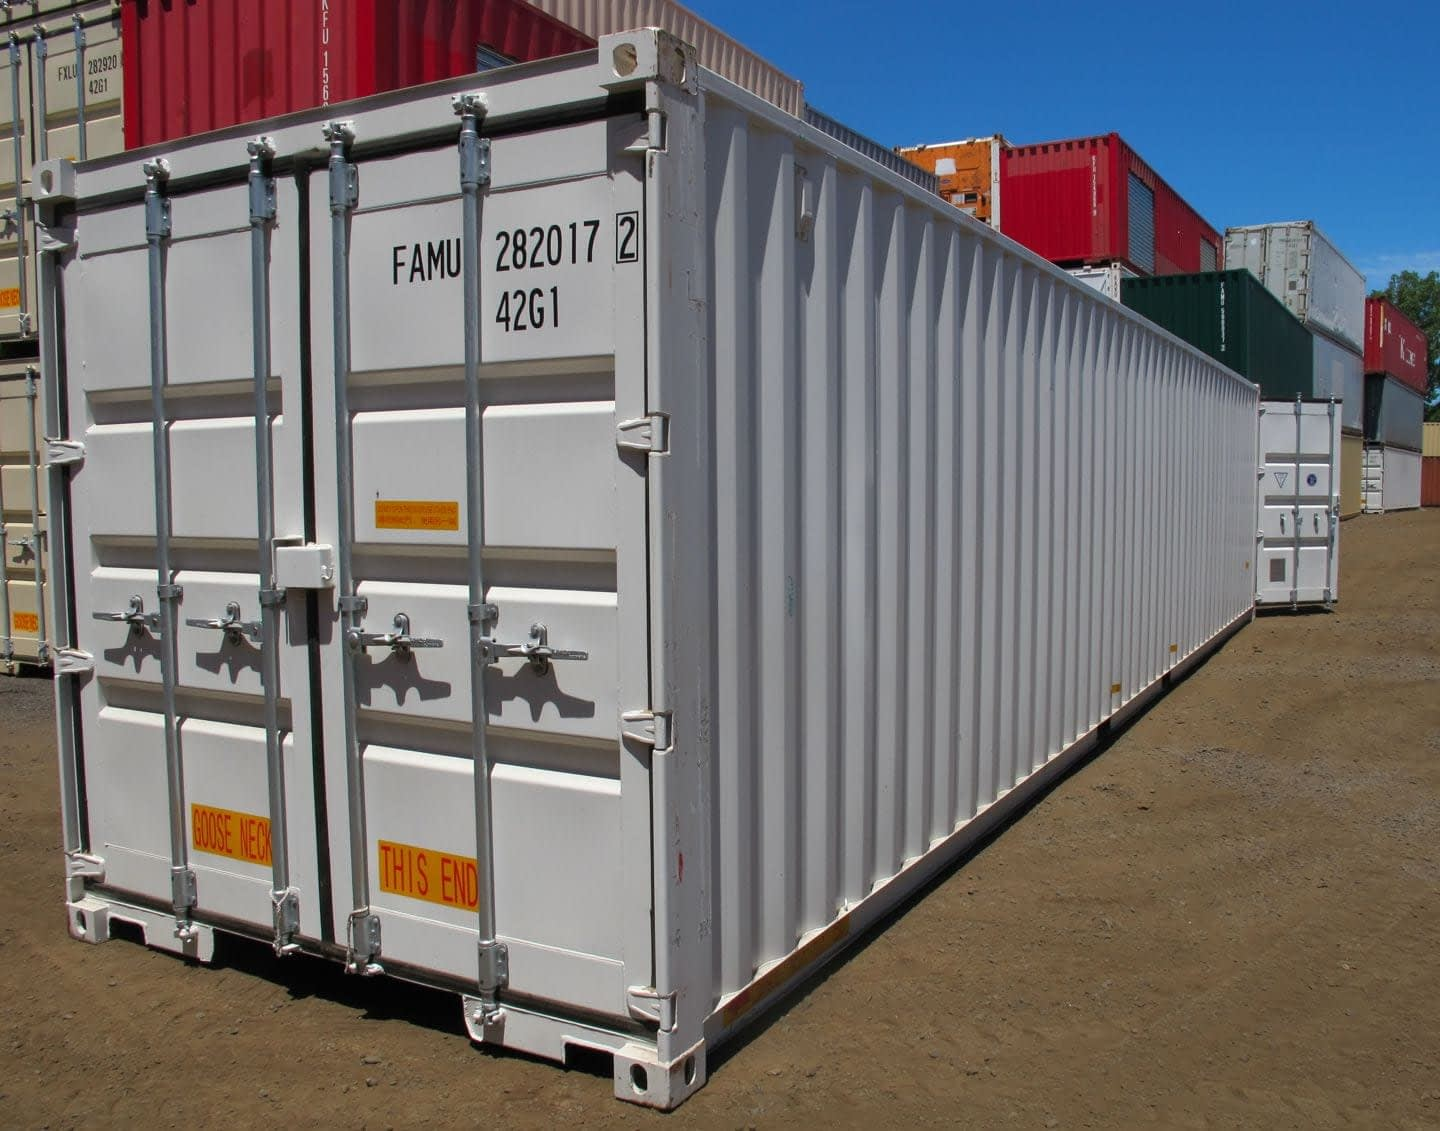 TRS sells New 40 foot long double door containers in 8'6' H